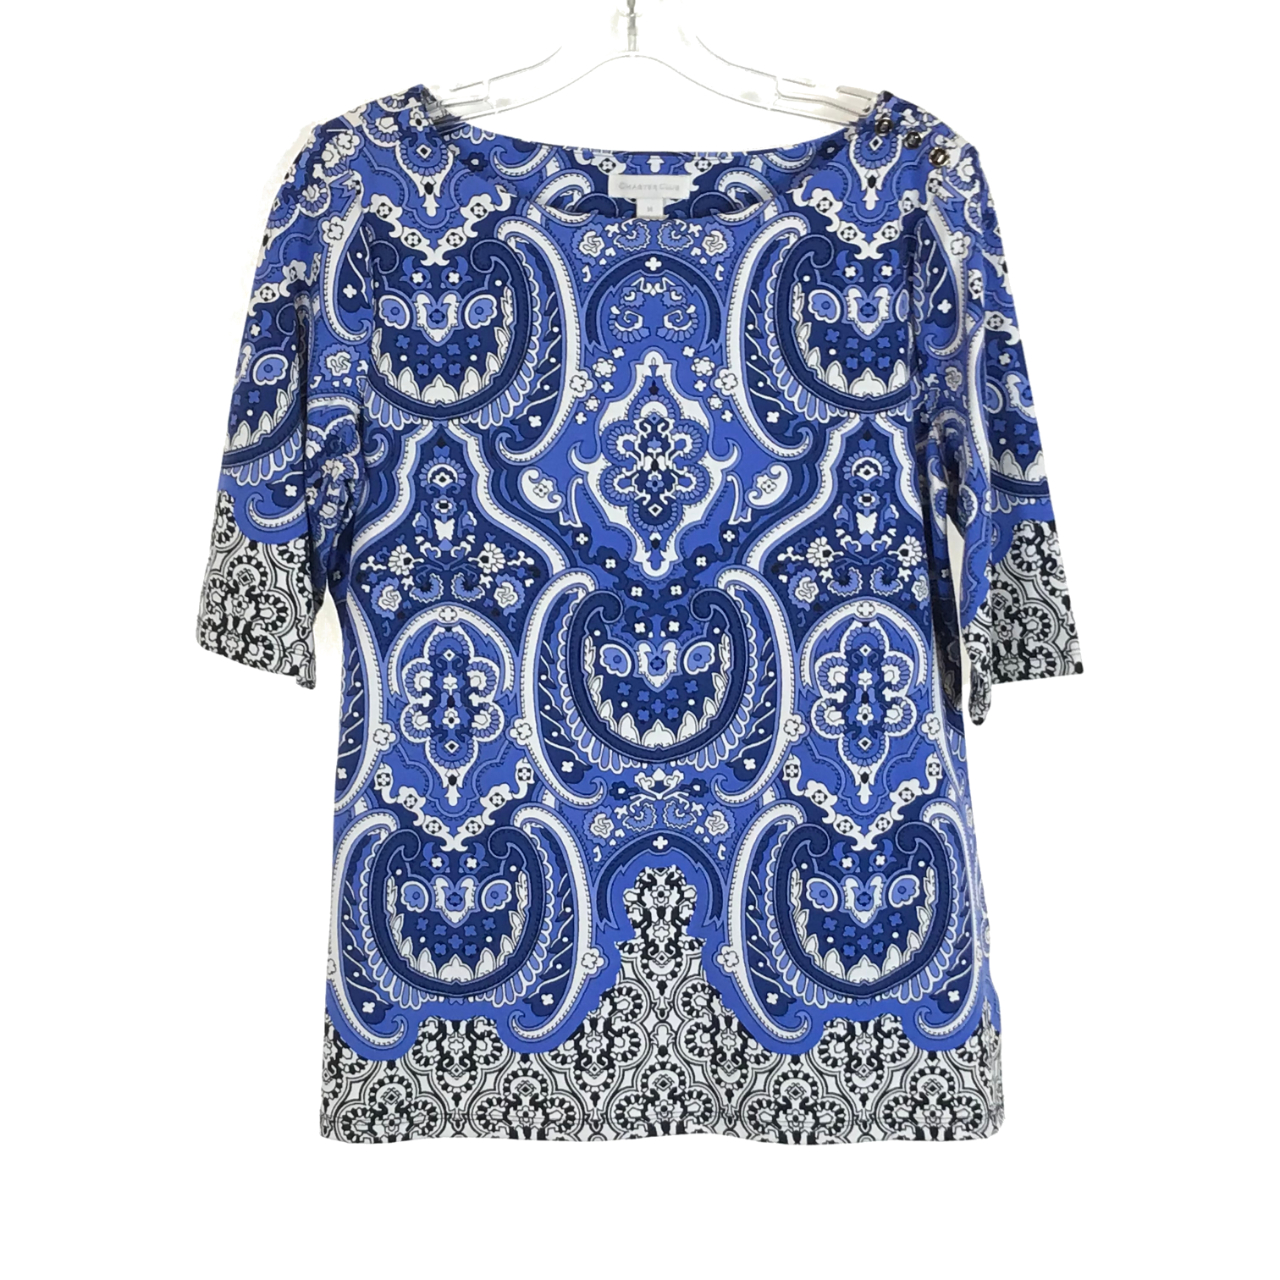 Product Image 1 - Mosaic Print Top Charter Club  Reworked into